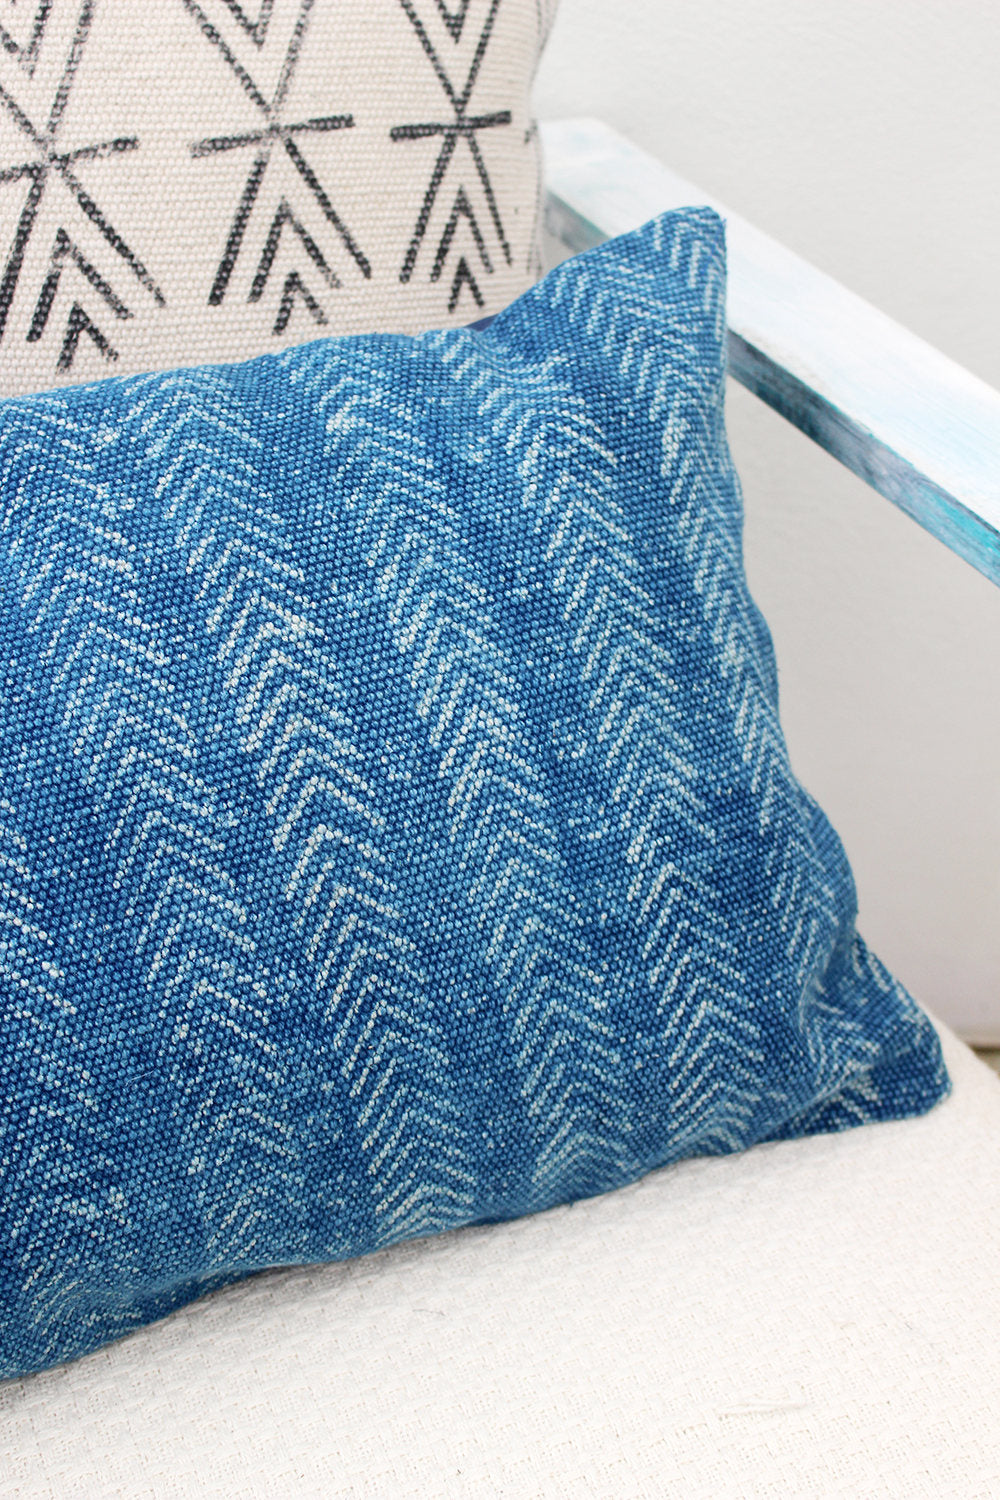 INDIGO RECTANGLE DECORATIVE CUSHION COVER